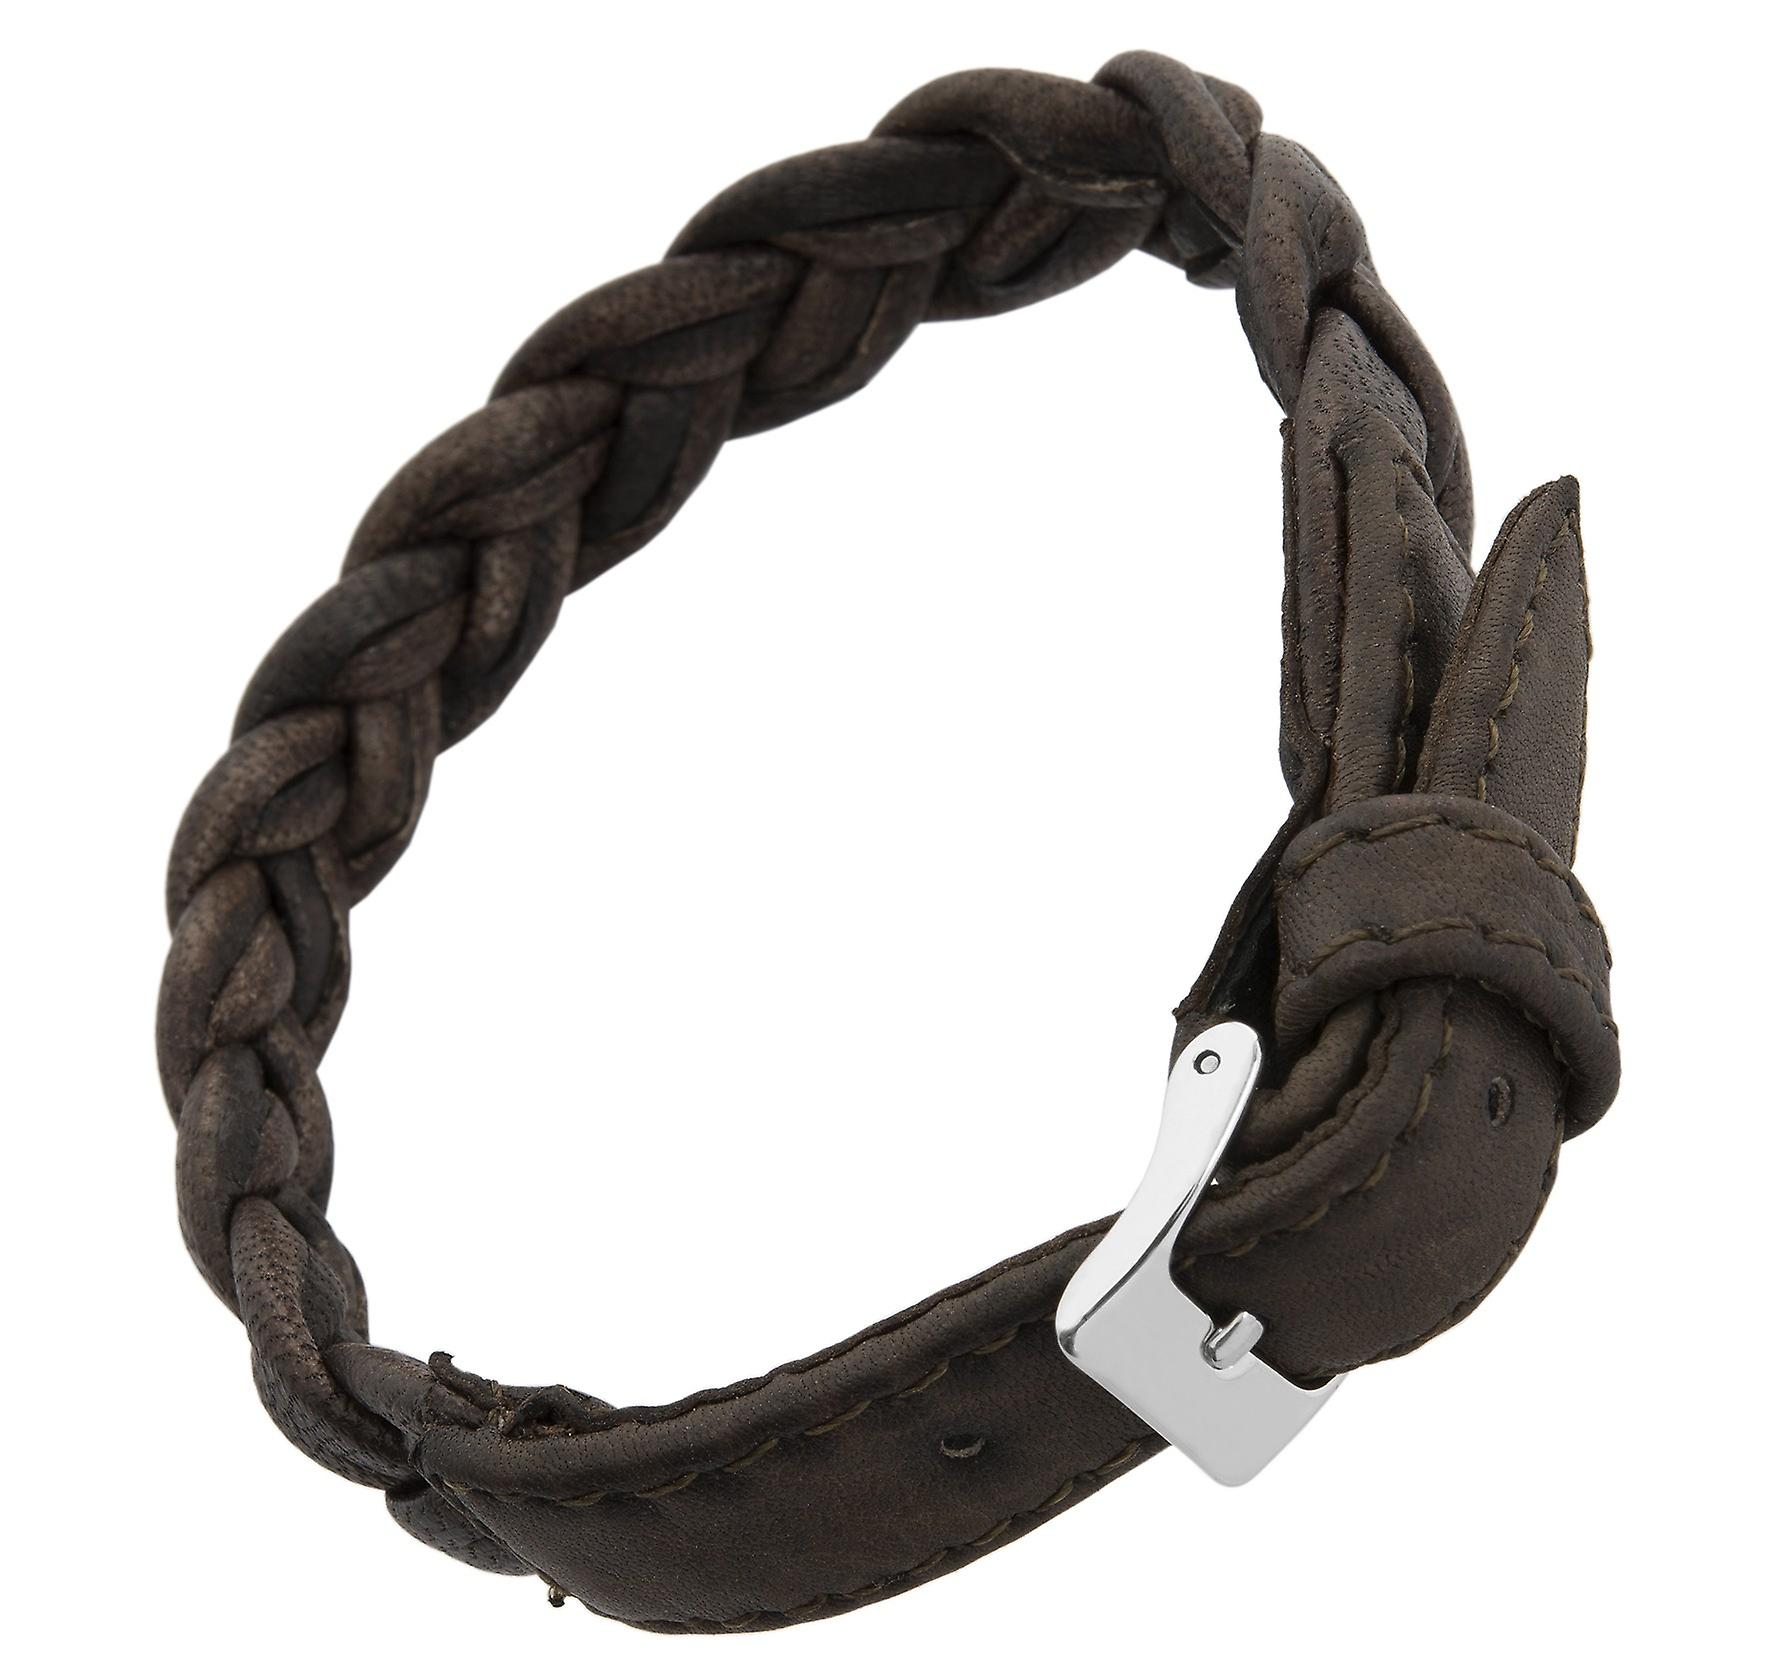 Burgmeister Leather bracelet, JBM4010-769